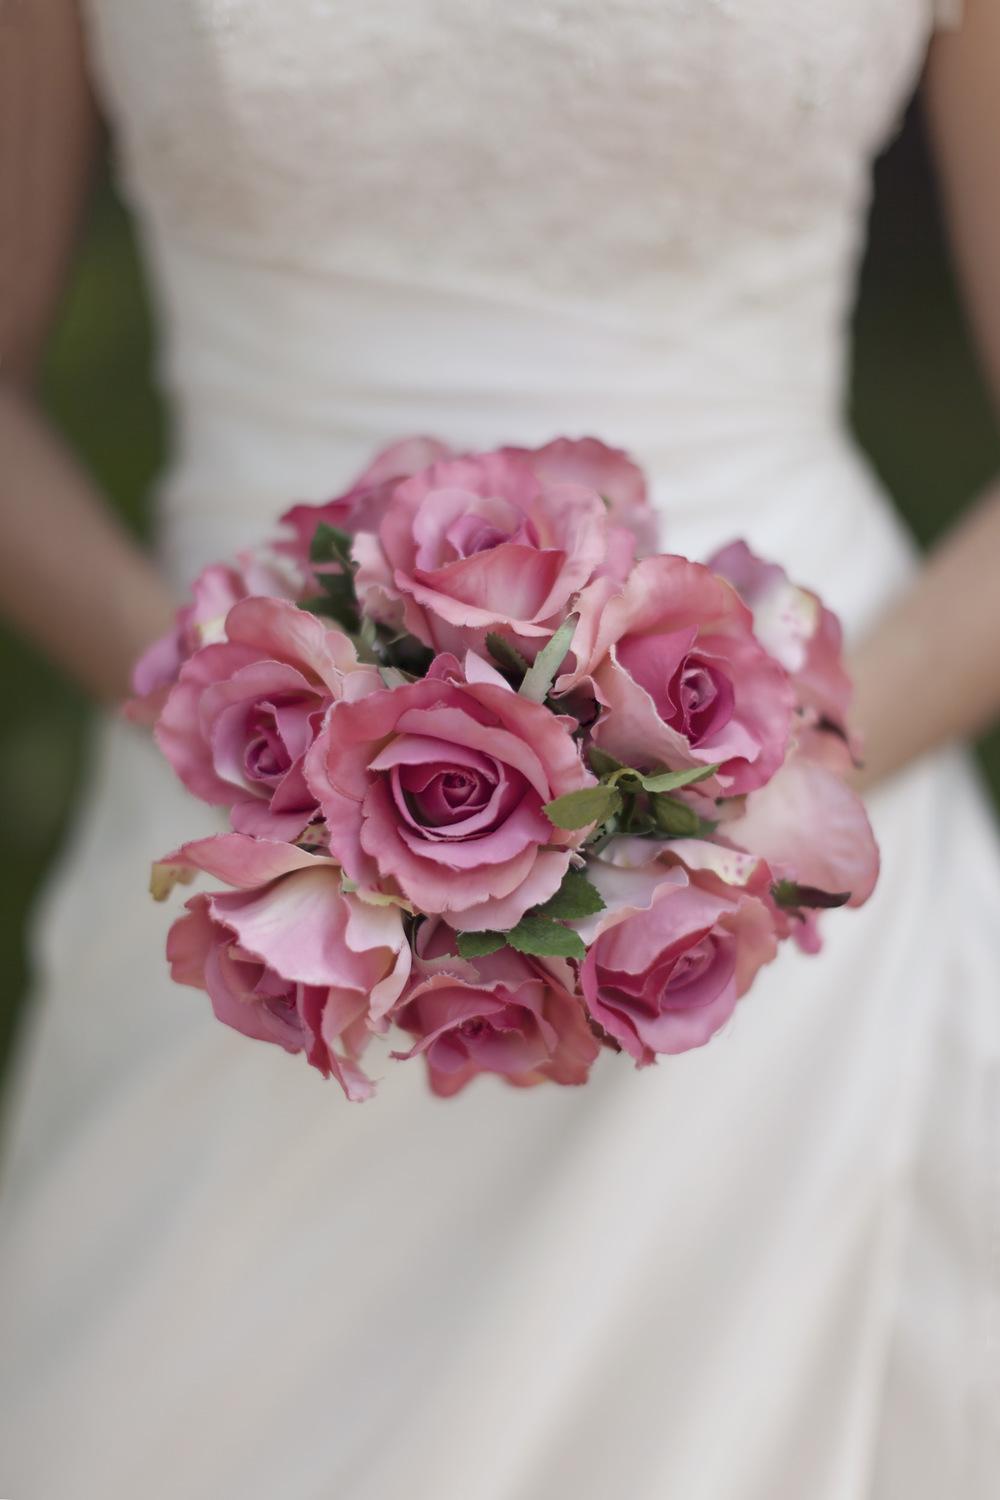 Alanna bouquet: wedding photographer in Bath and Wiltshire.